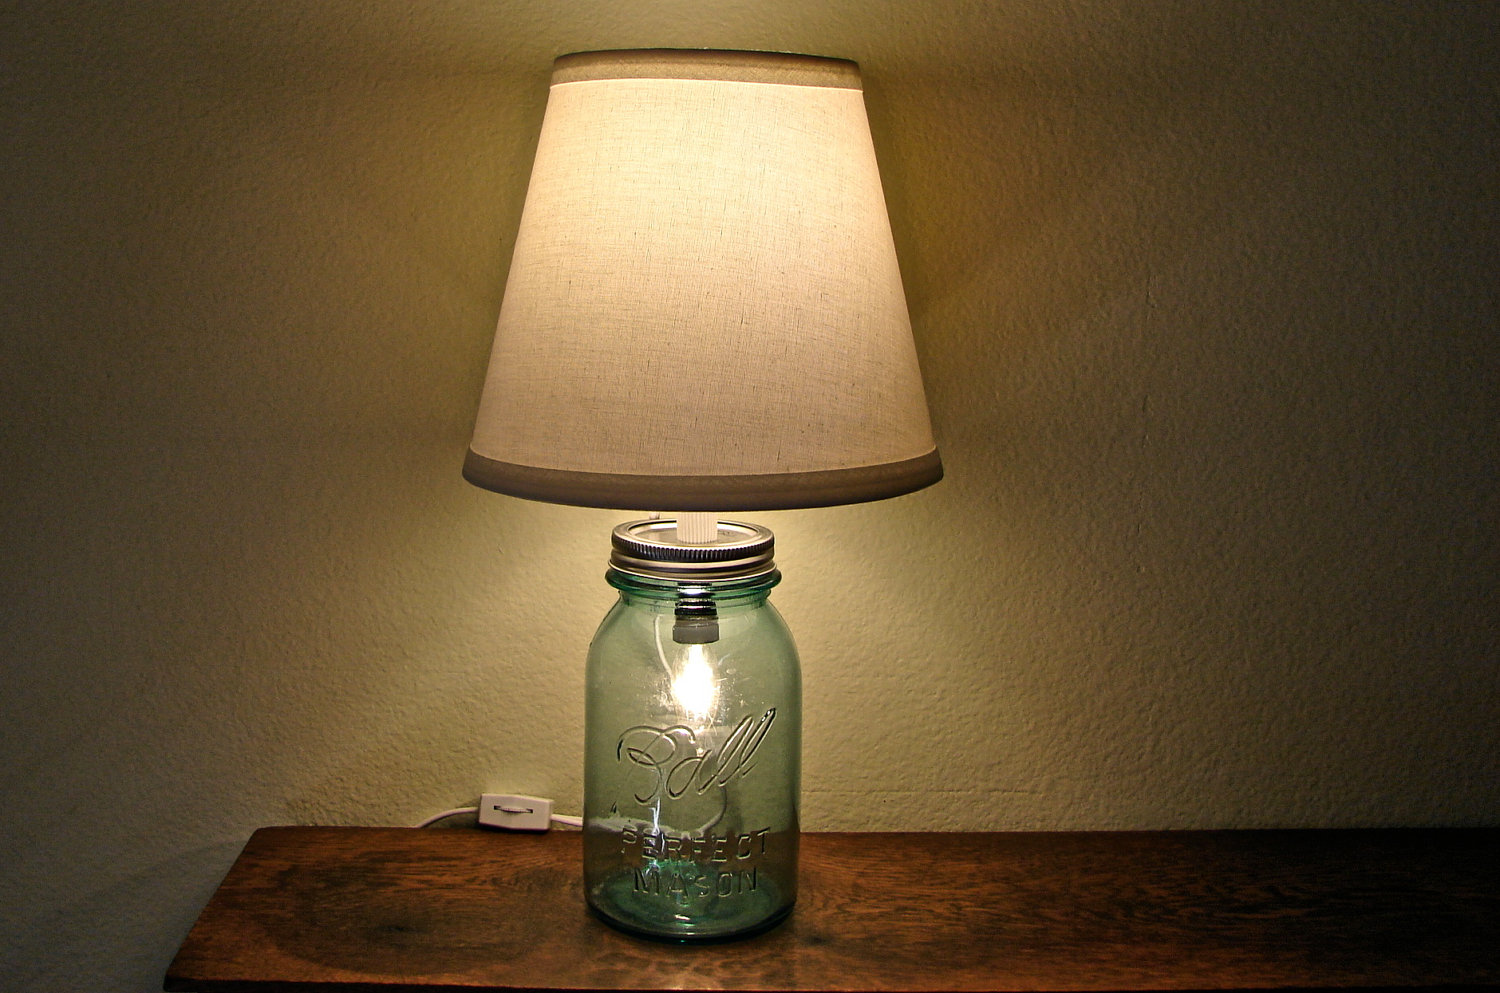 How To Make Mason Jar Lights Use Mason Jar Lamps To Add Rustic Charm To Your Home Warisan